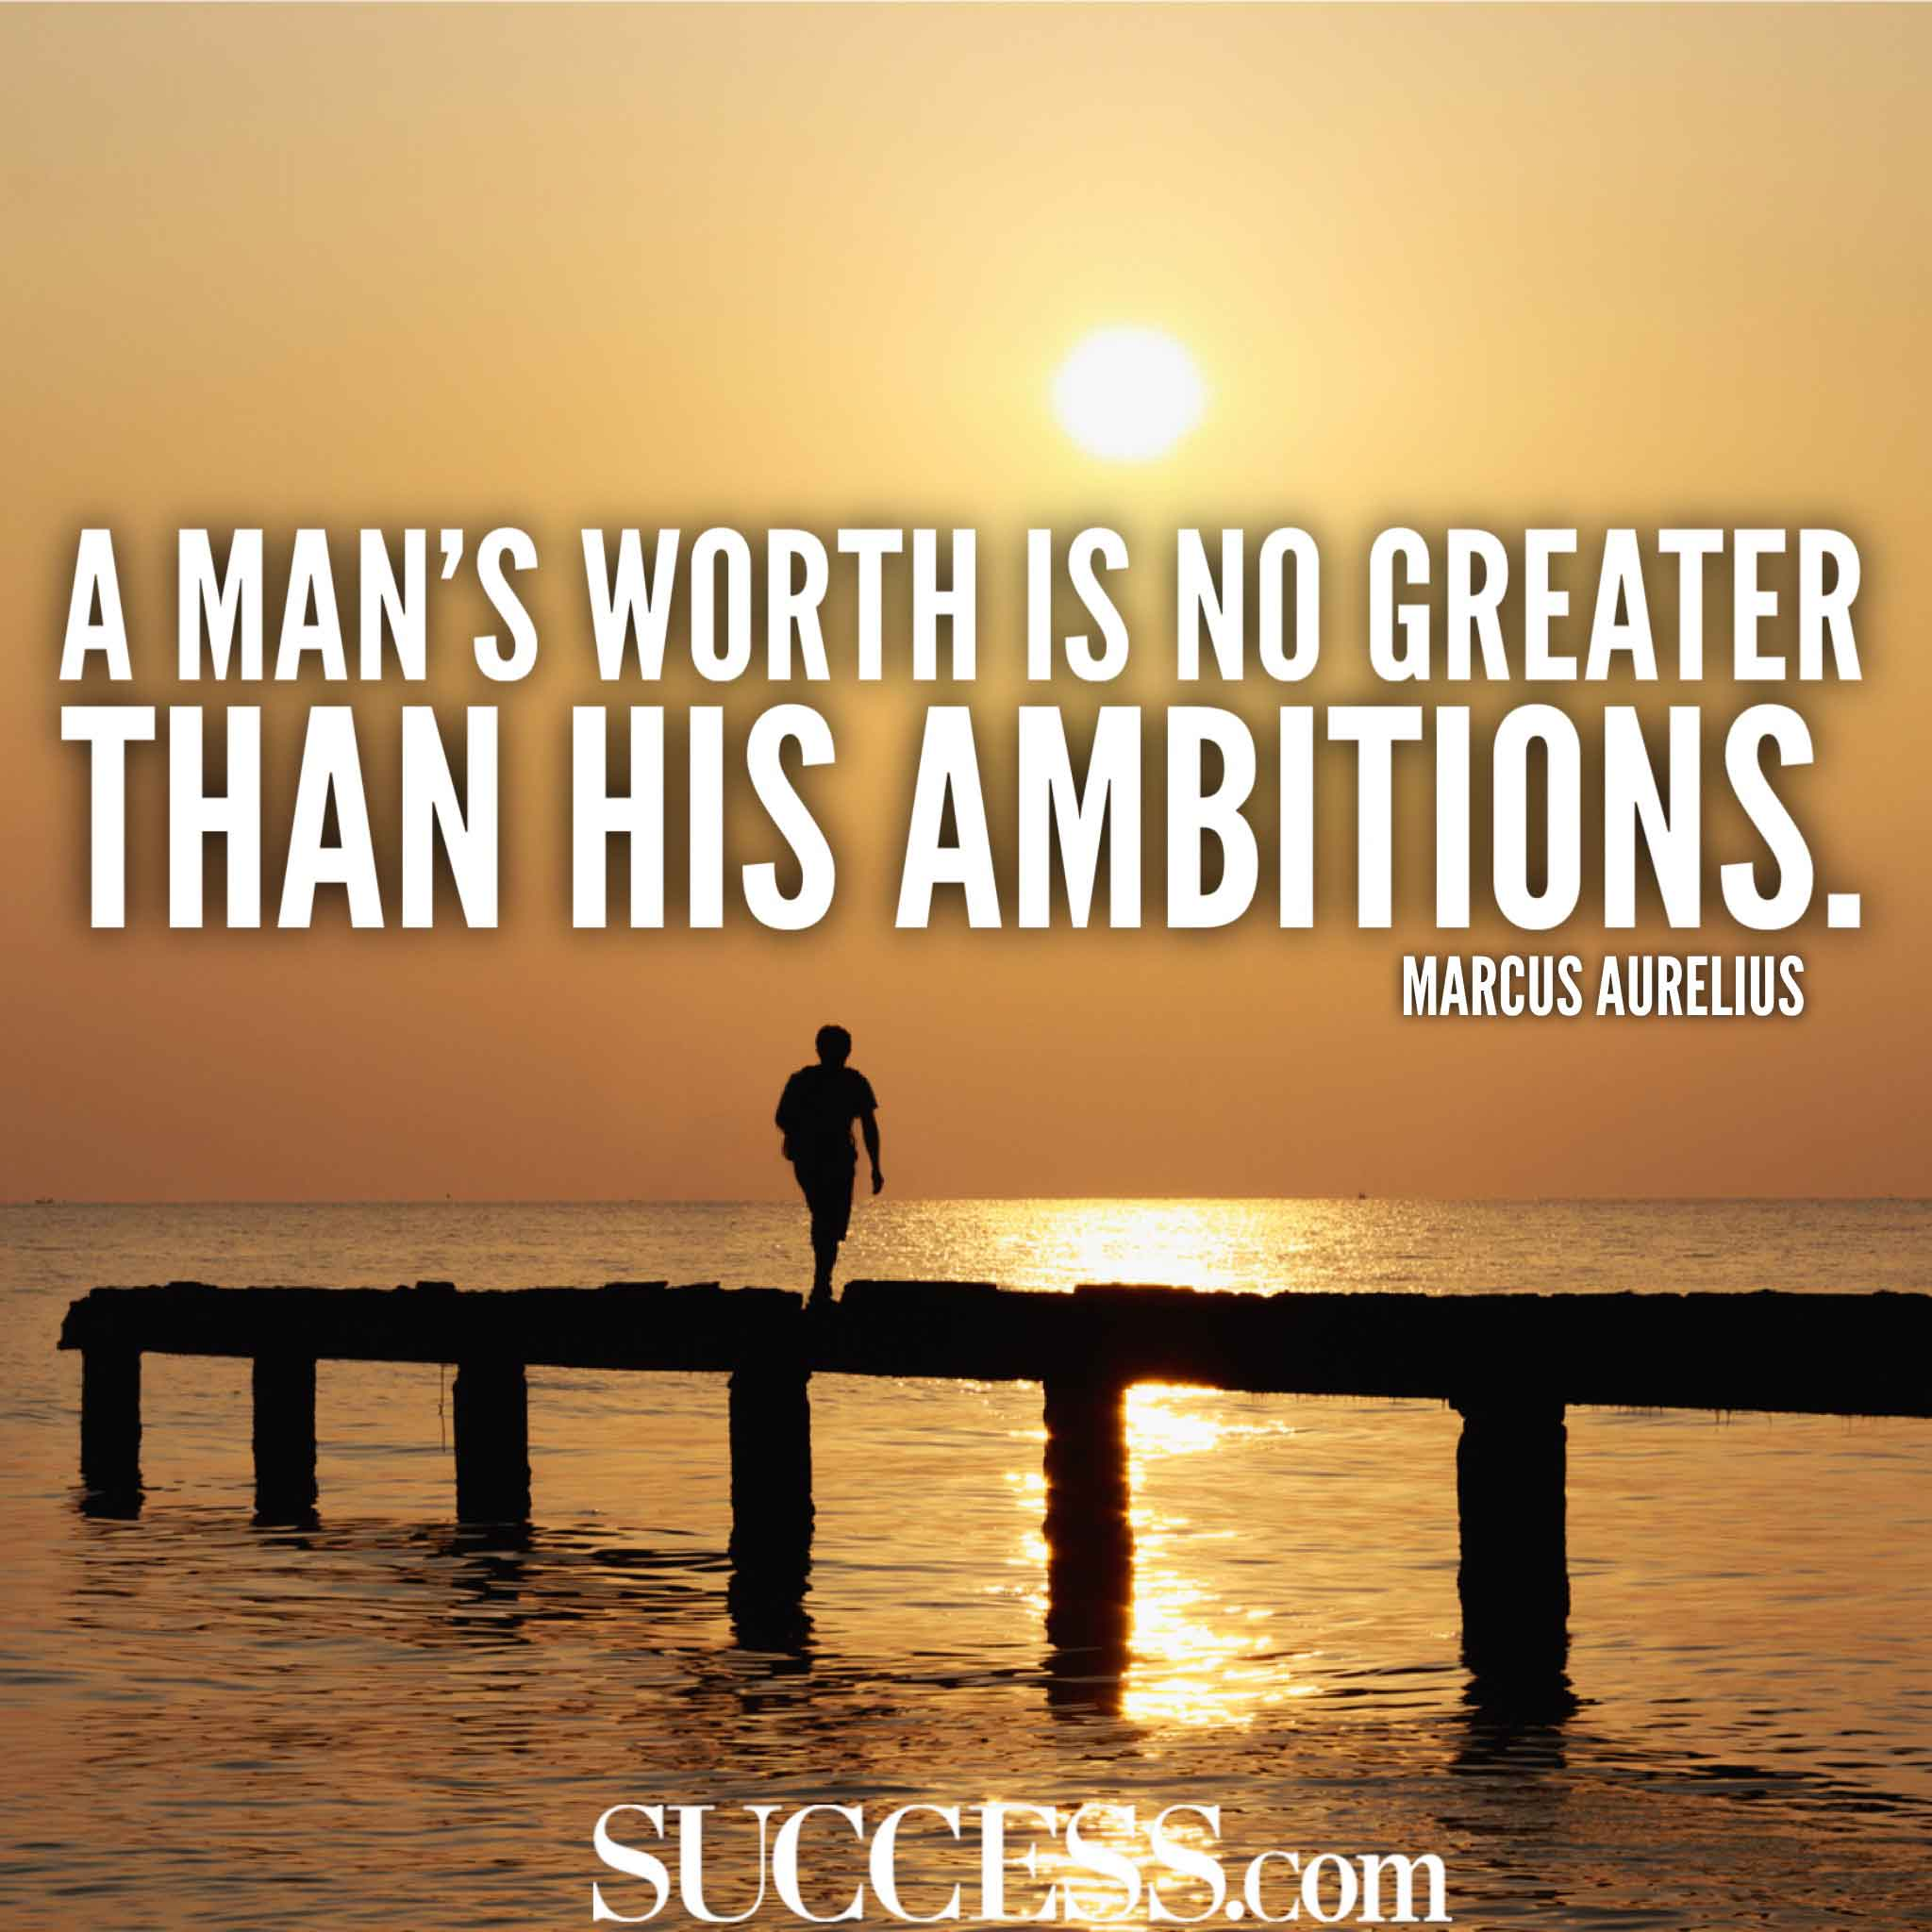 13 Motivational Quotes About the Power of Ambition